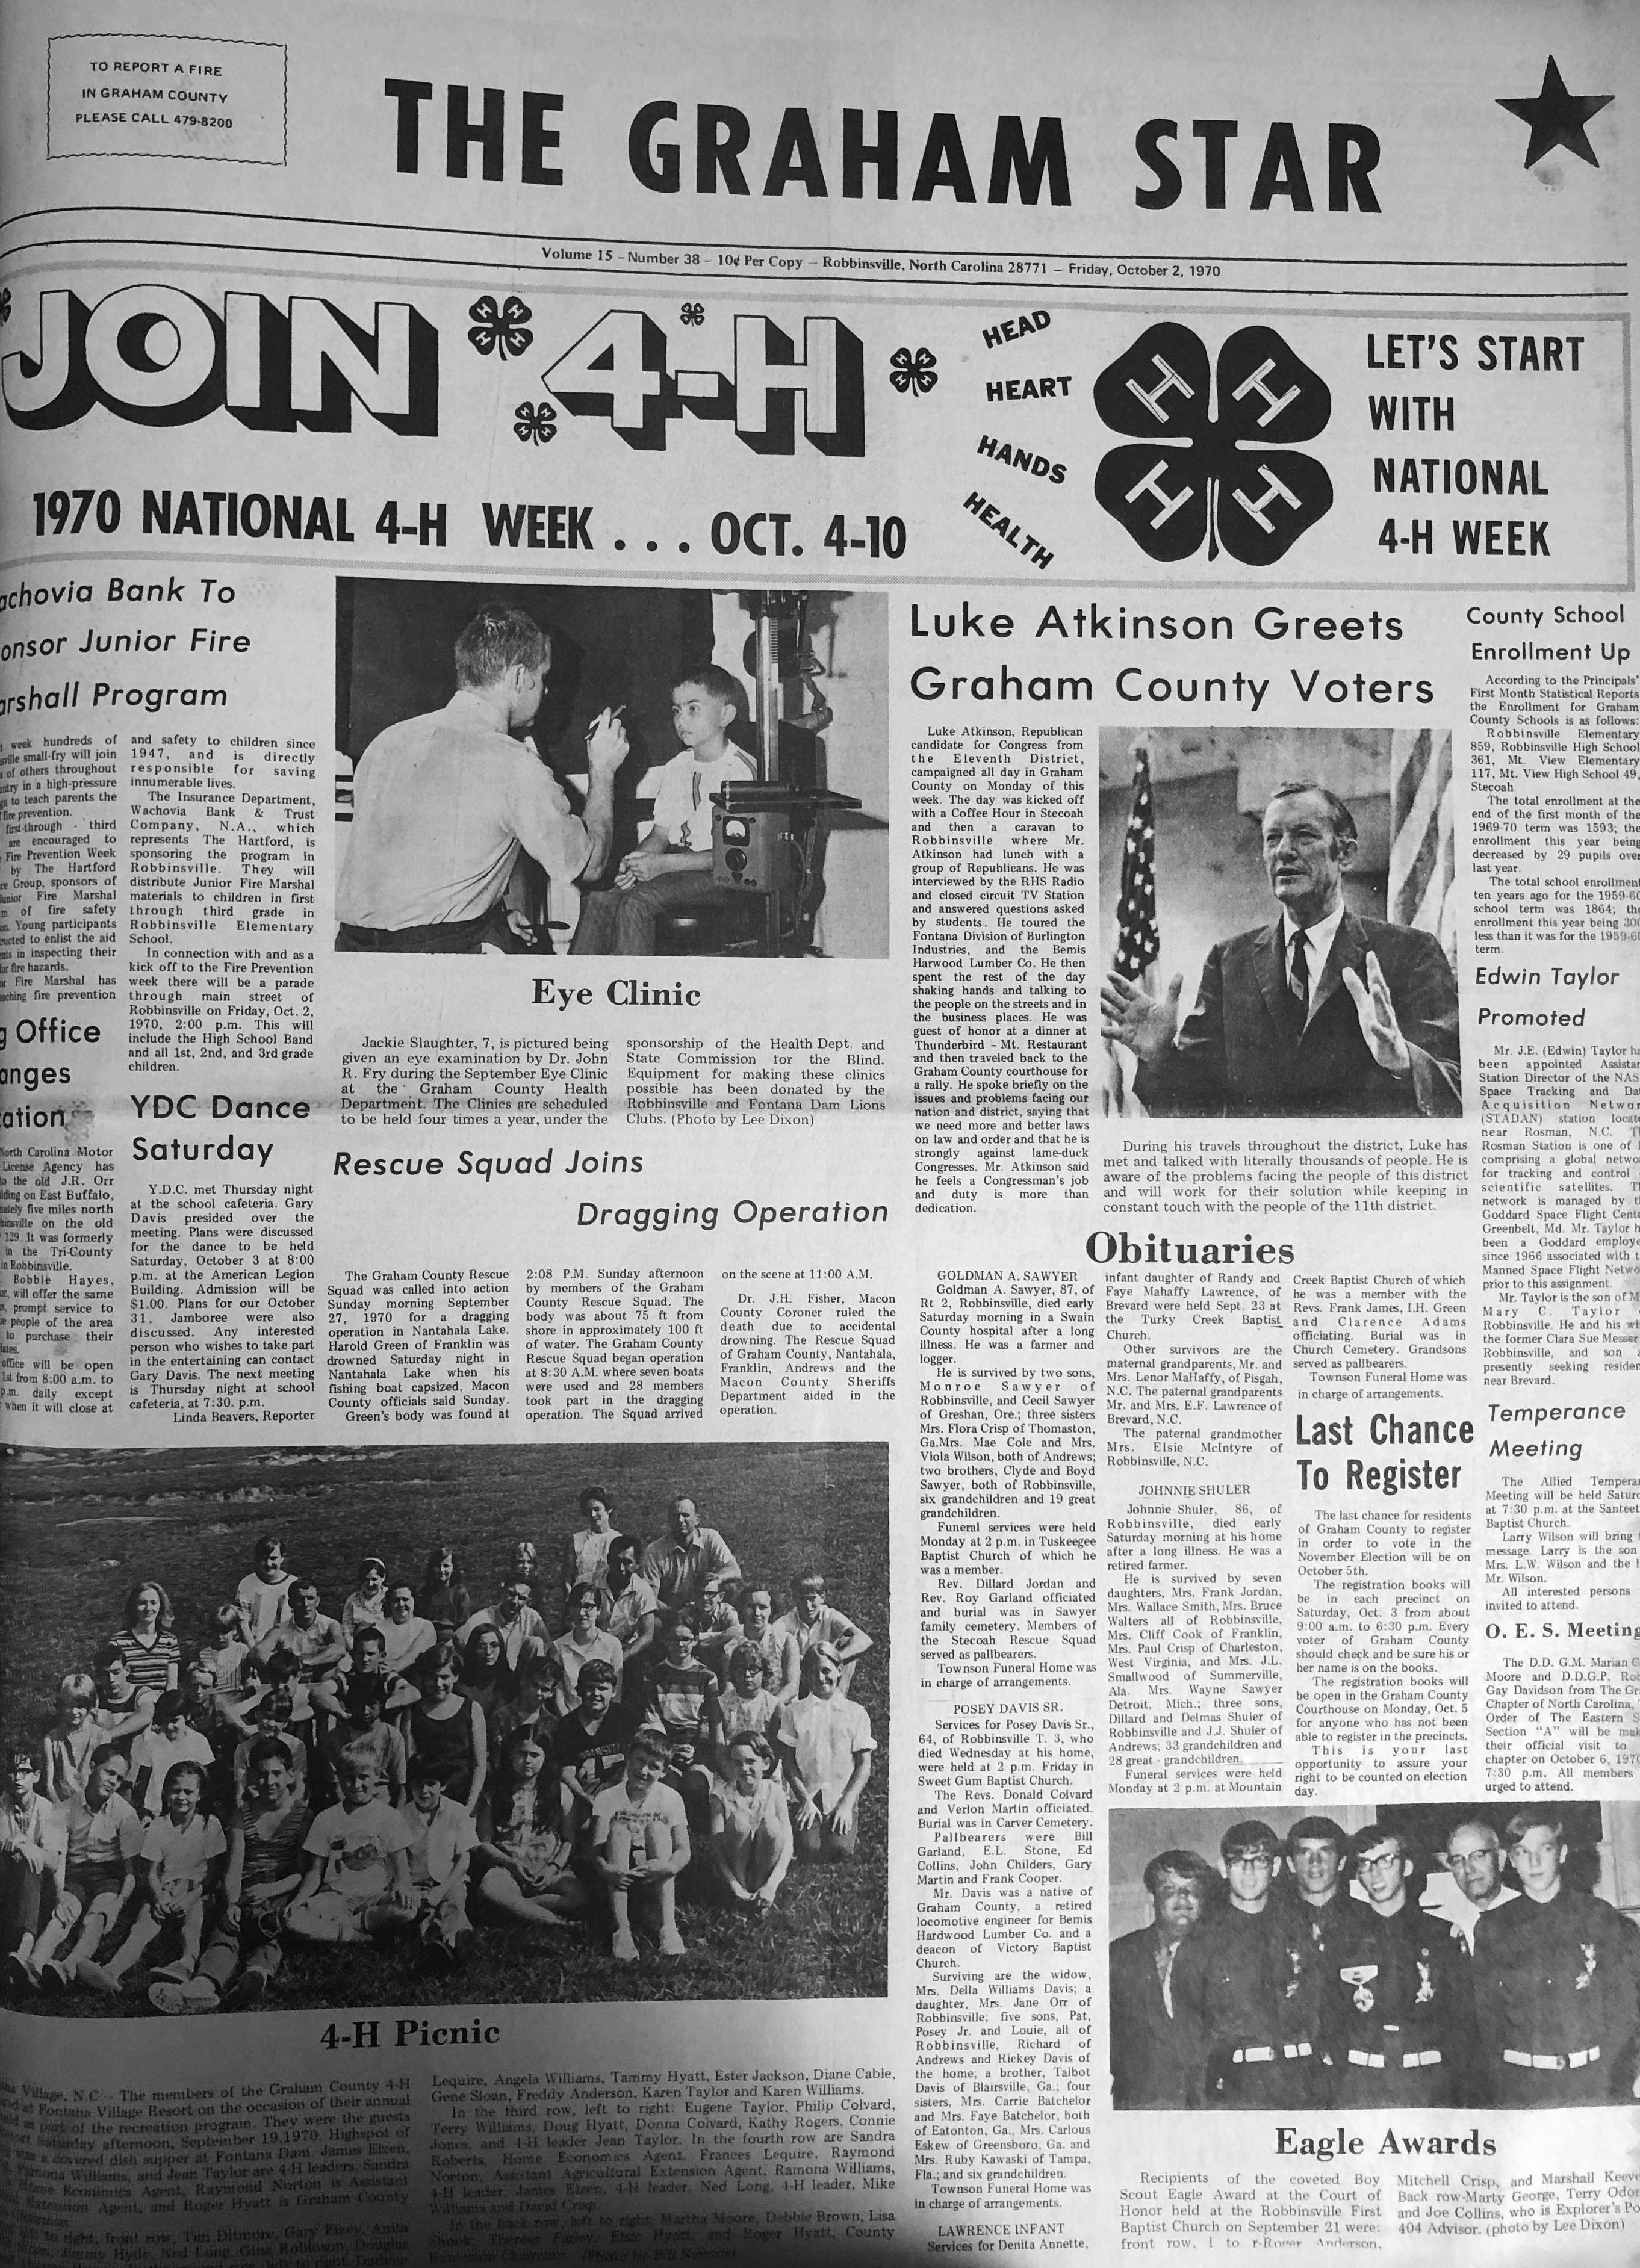 The Graham Star's front page from 50 years ago (Oct. 2, 1970).